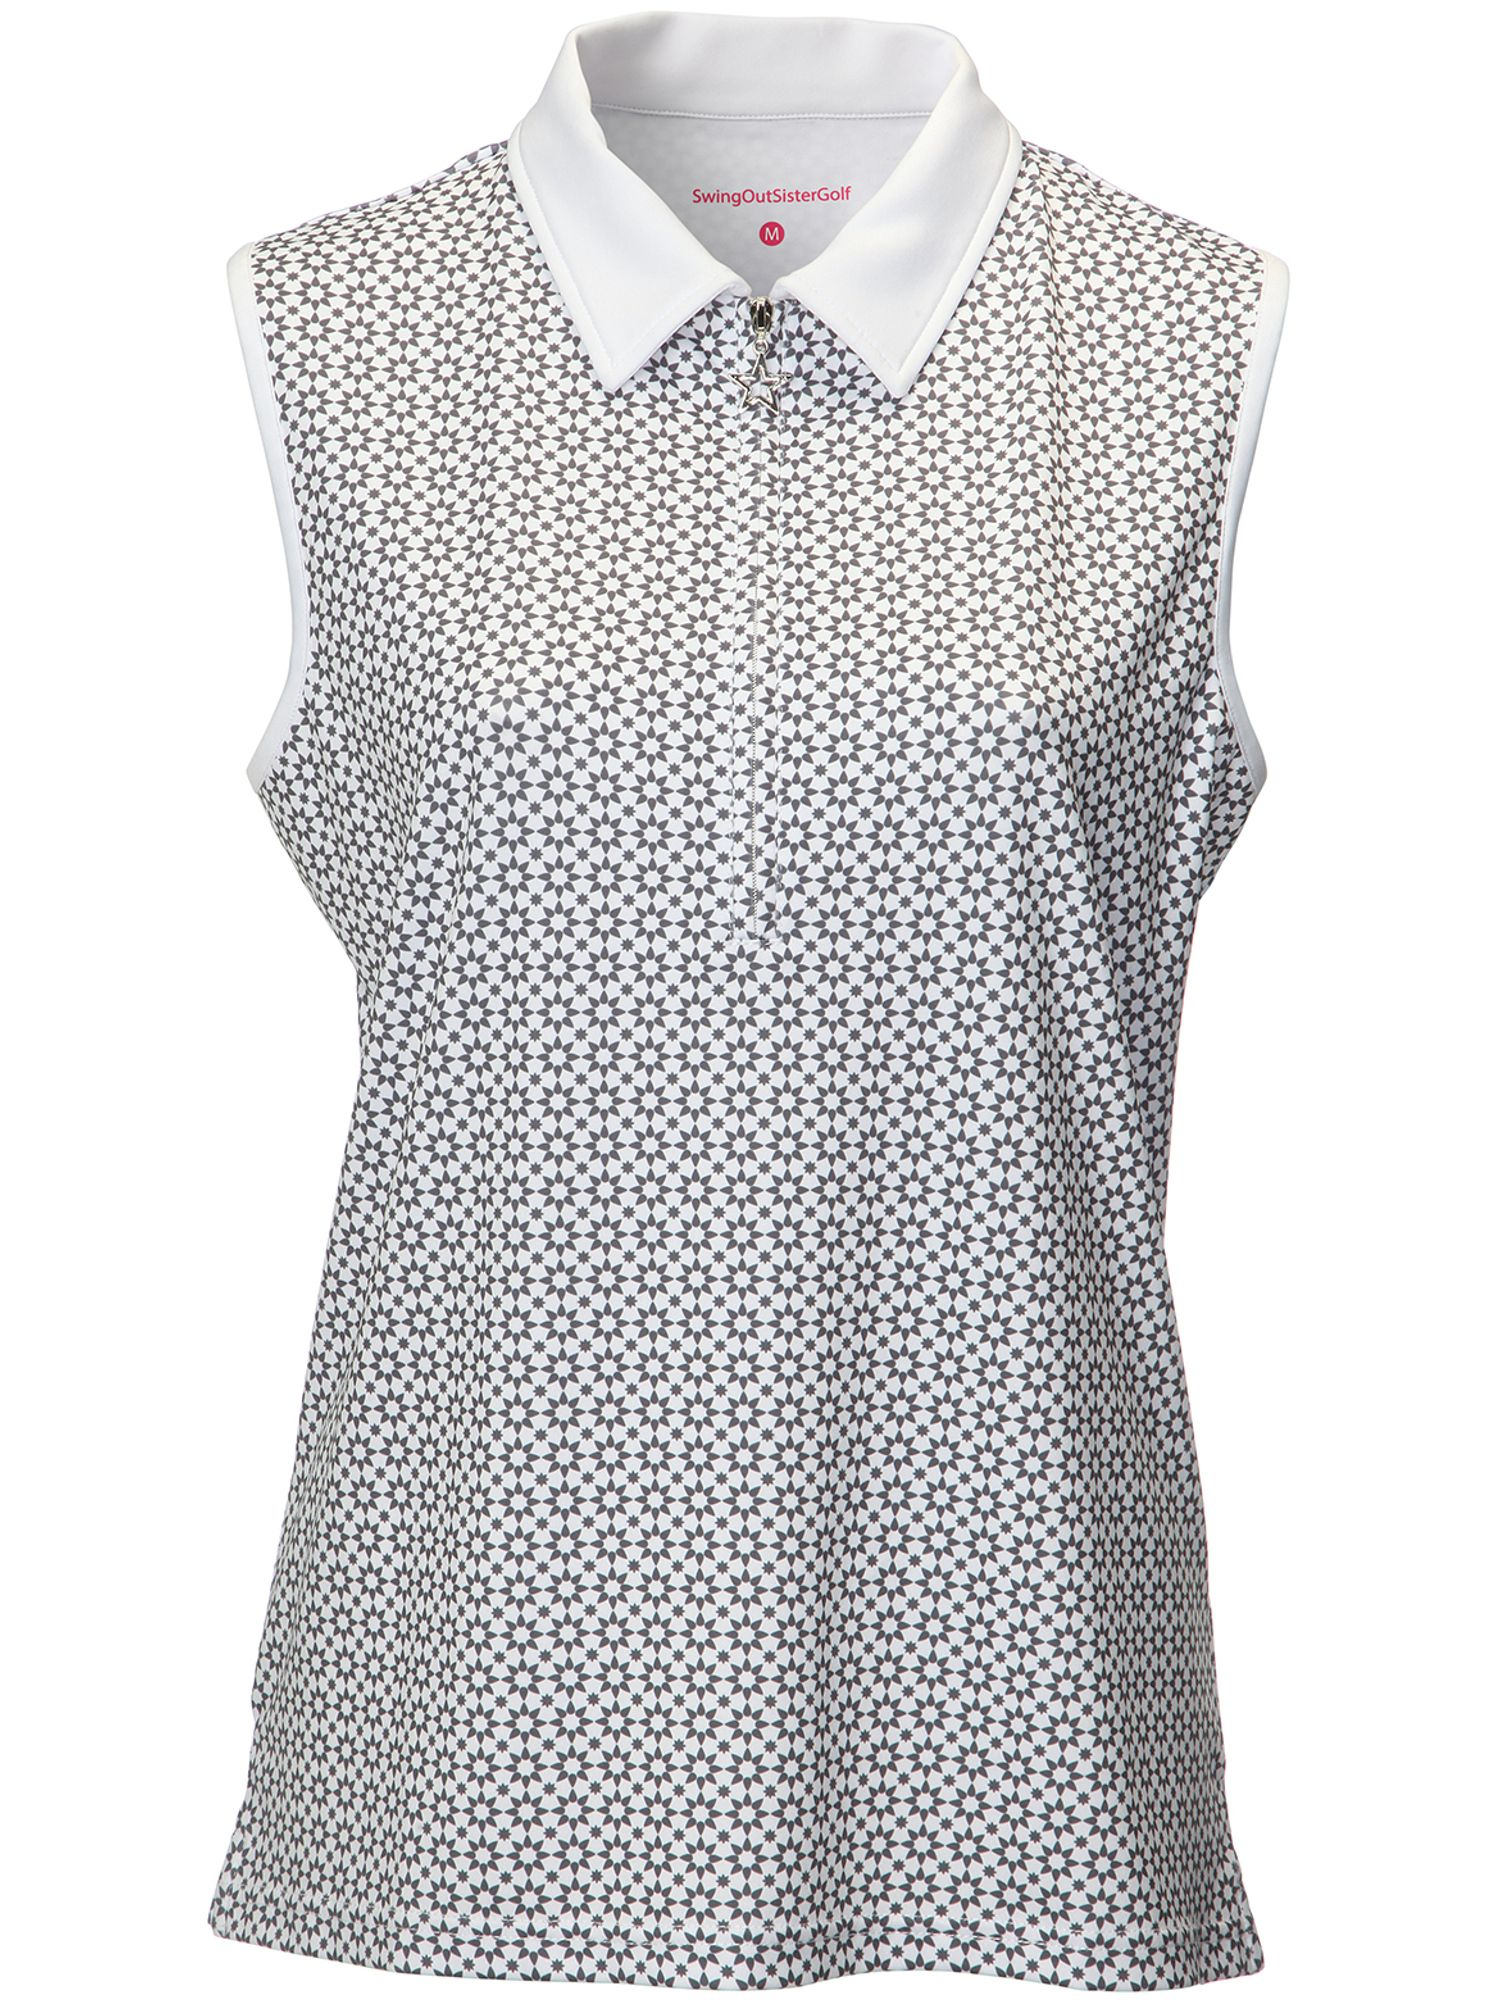 Swing Out Sister Celine Single Jersey Sleeveless, Grey